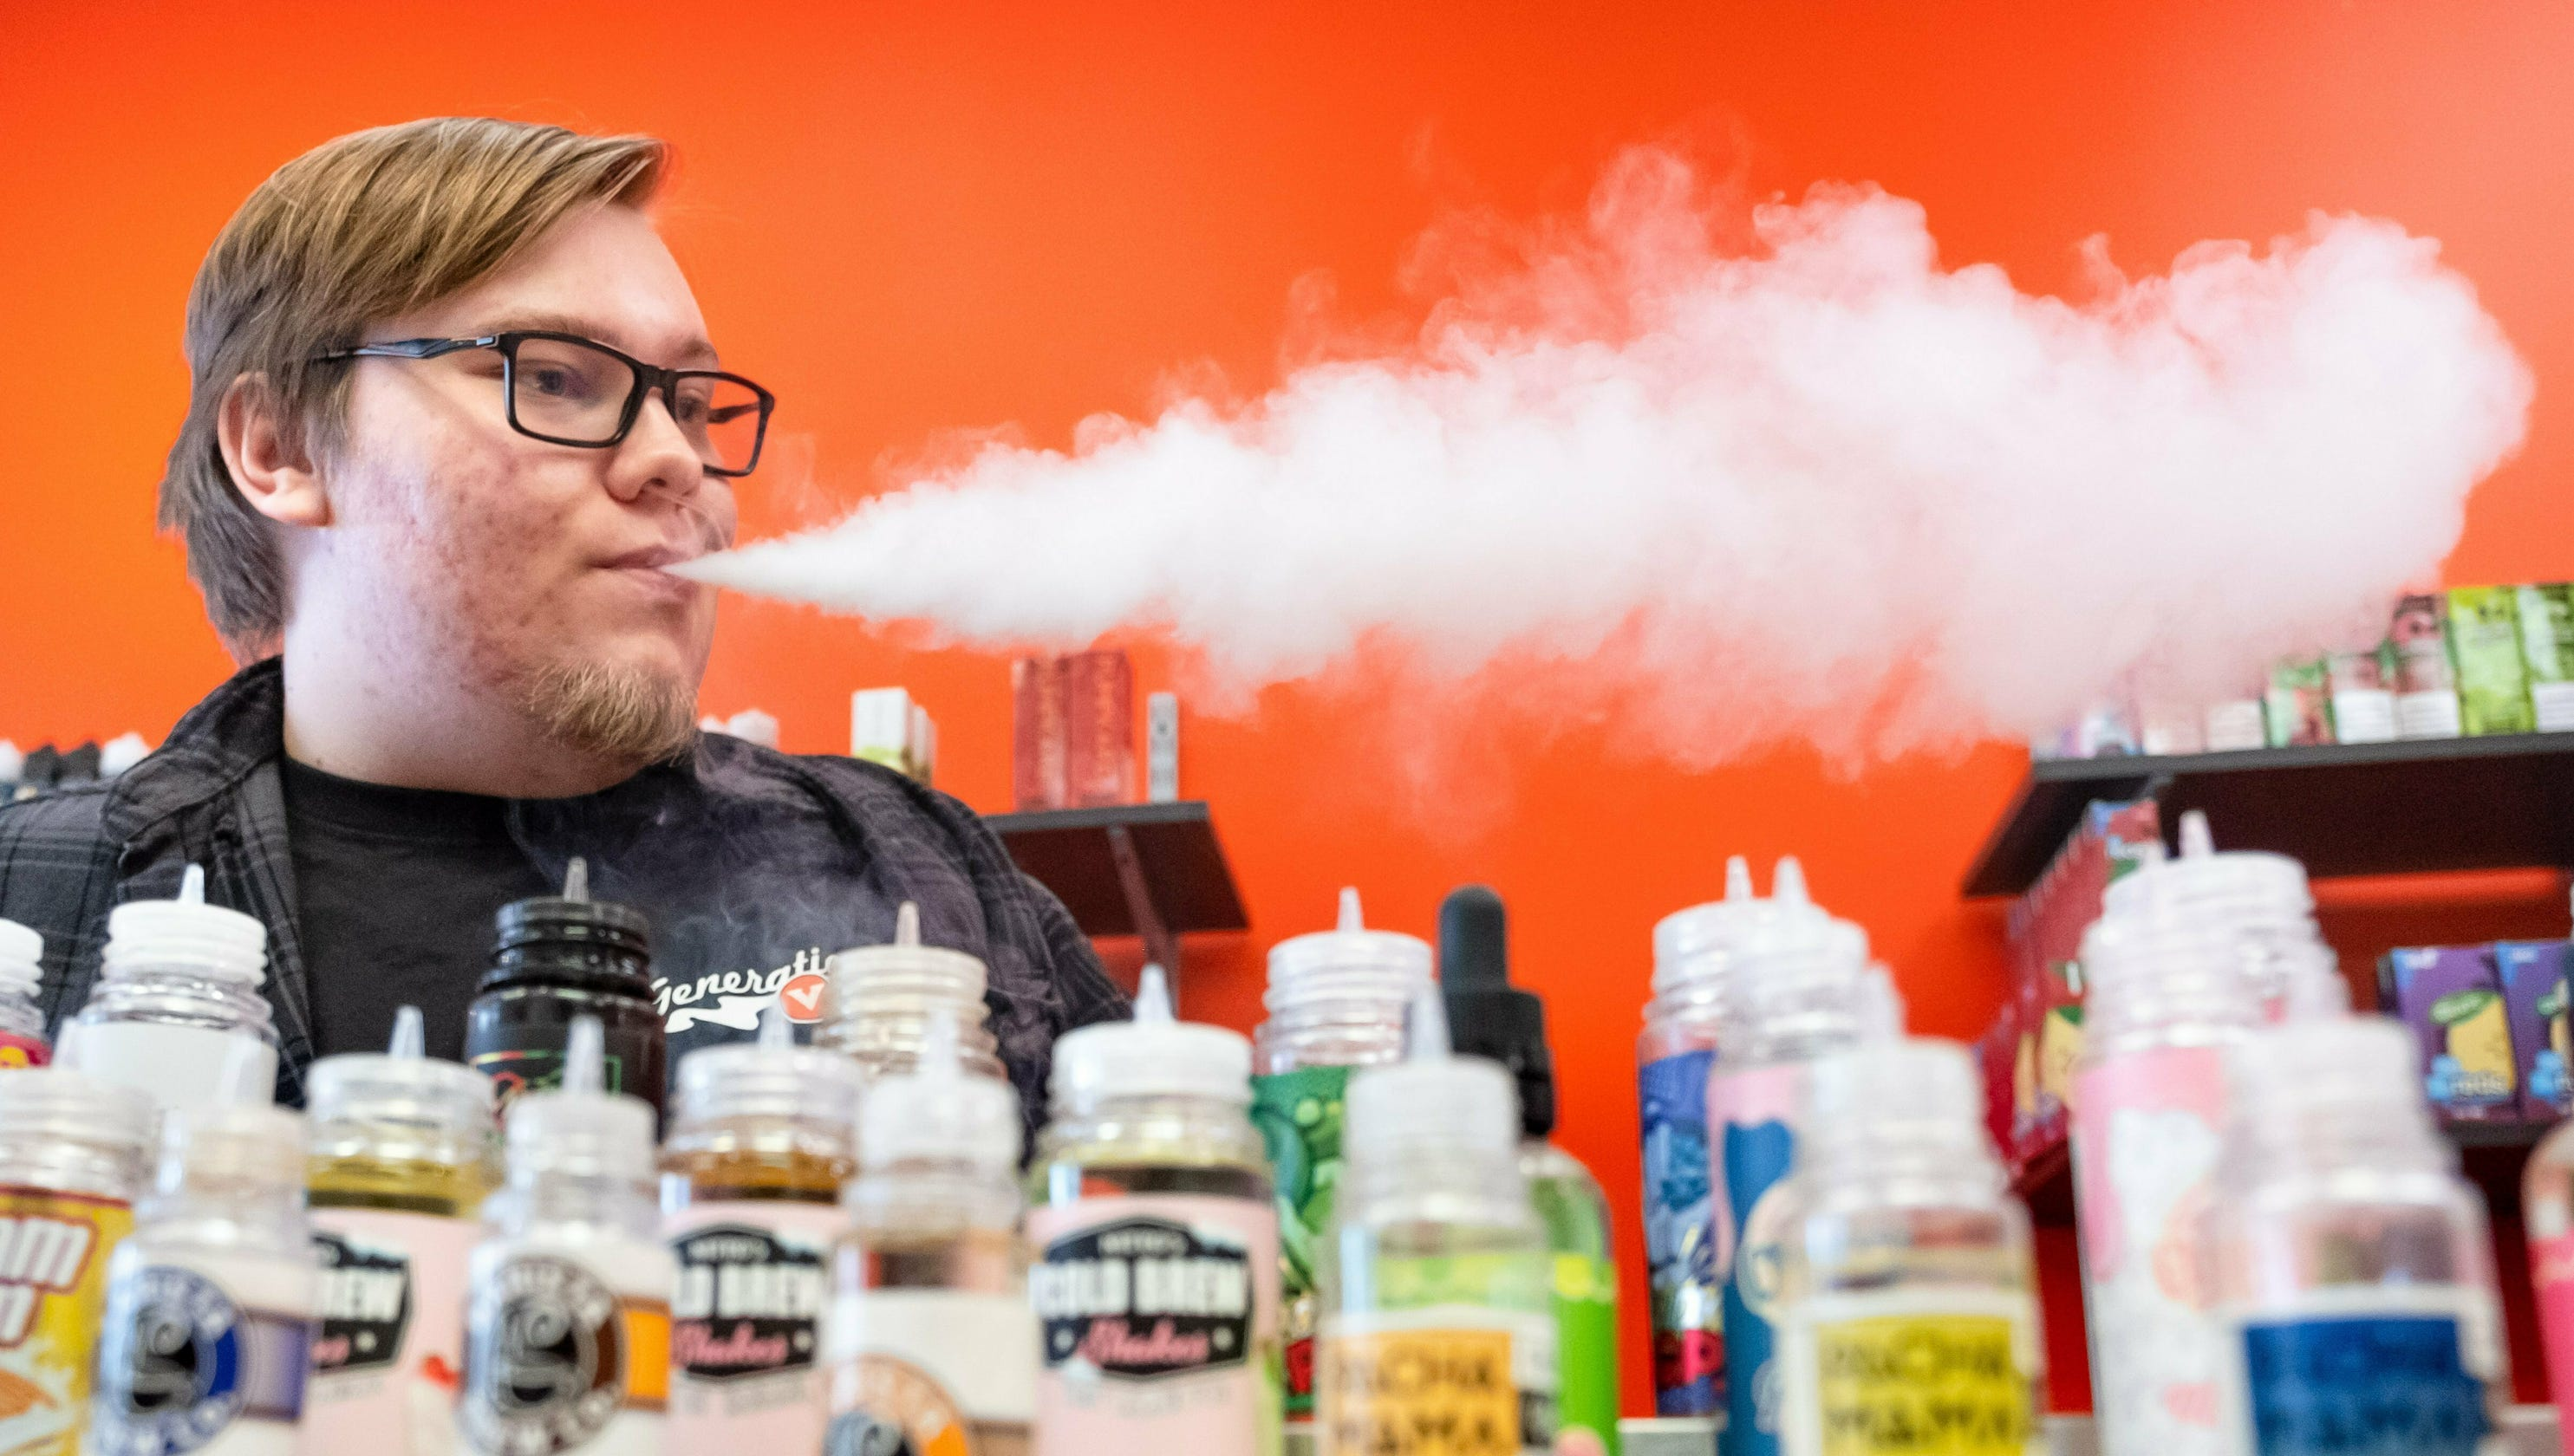 Pick up a joint instead, doc says: Vaping illnesses highlight flawed marijuana regulations - USA TODAY